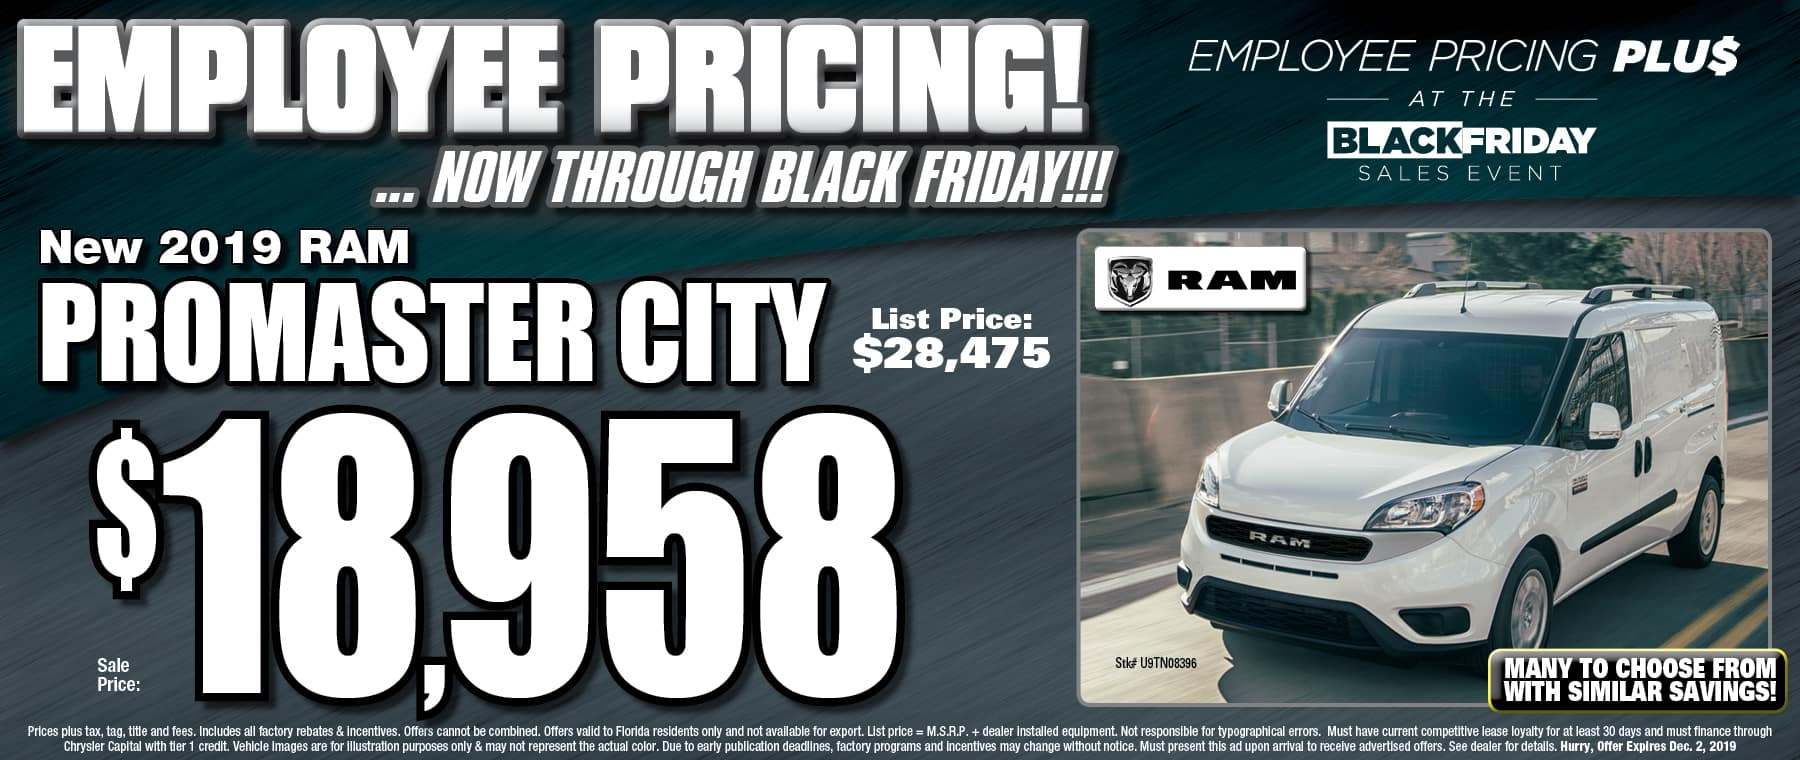 New Ram Promaster City!